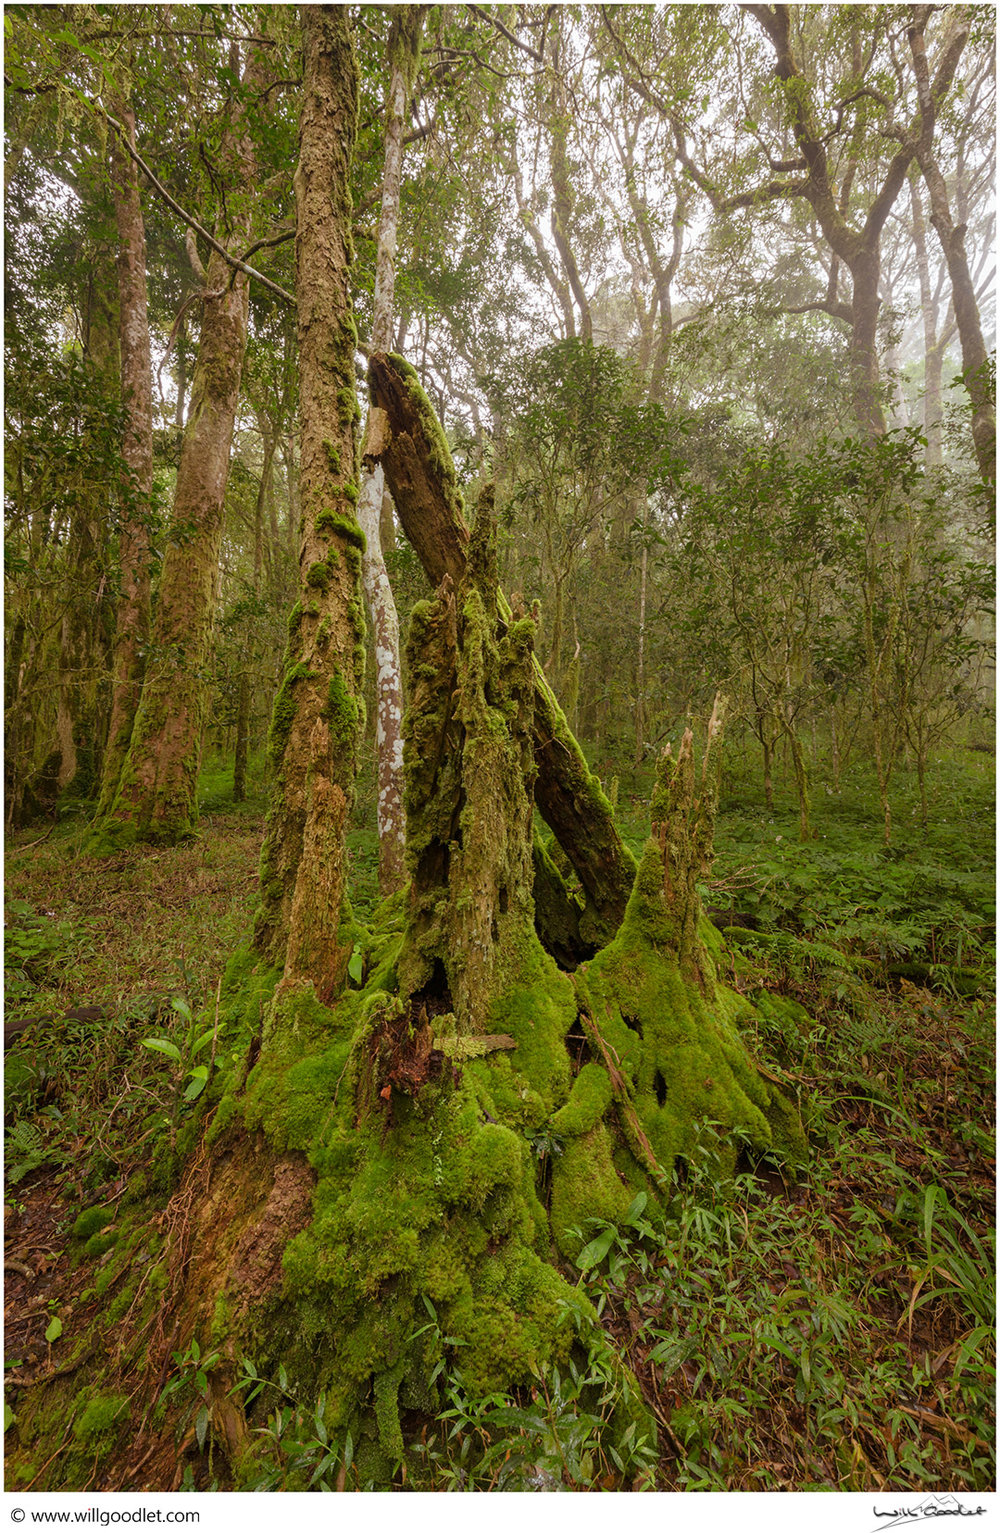 Ancient tree stump, Woodbush Indigenous Forest, South Africa.